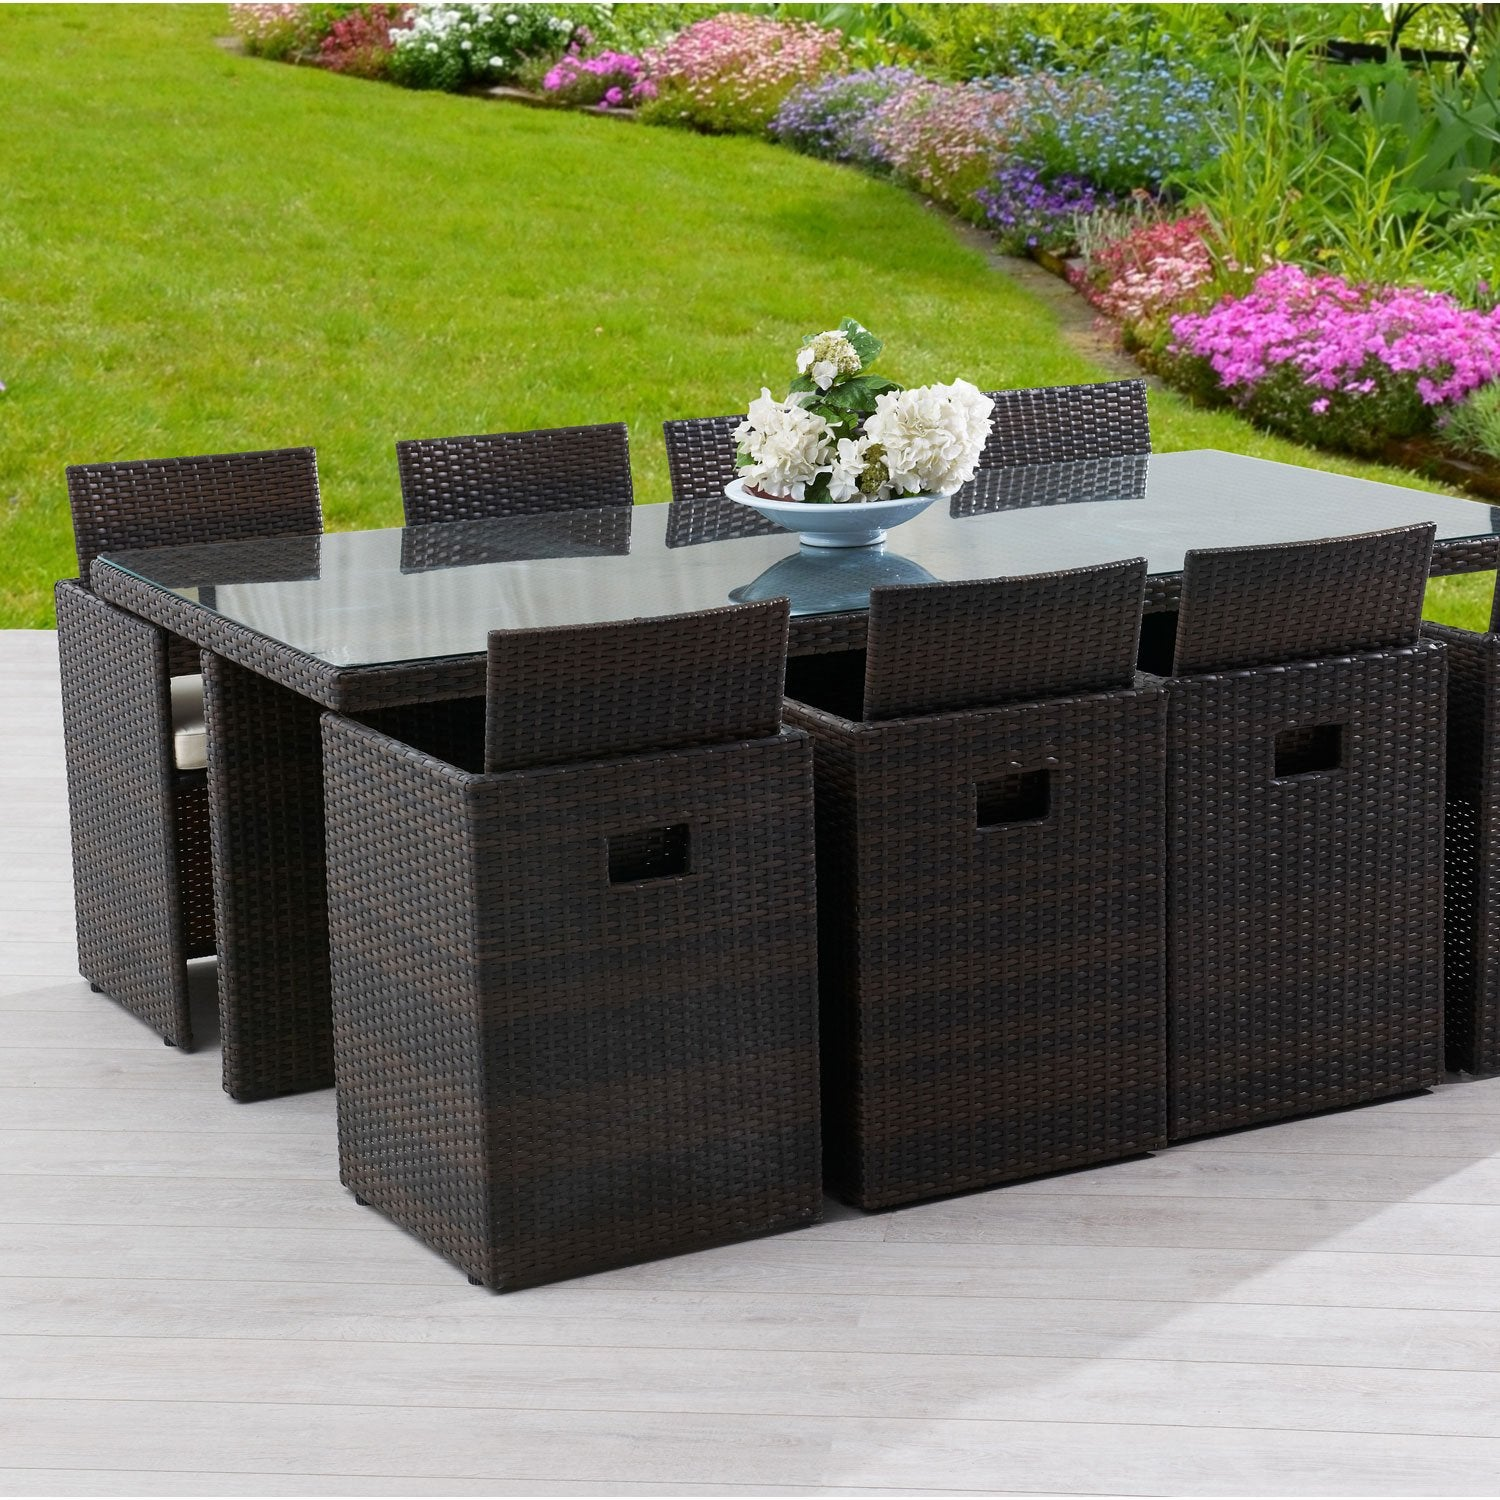 Salon de jardin encastrable r sine tress e marron 1 table - Table jardin tressee ...